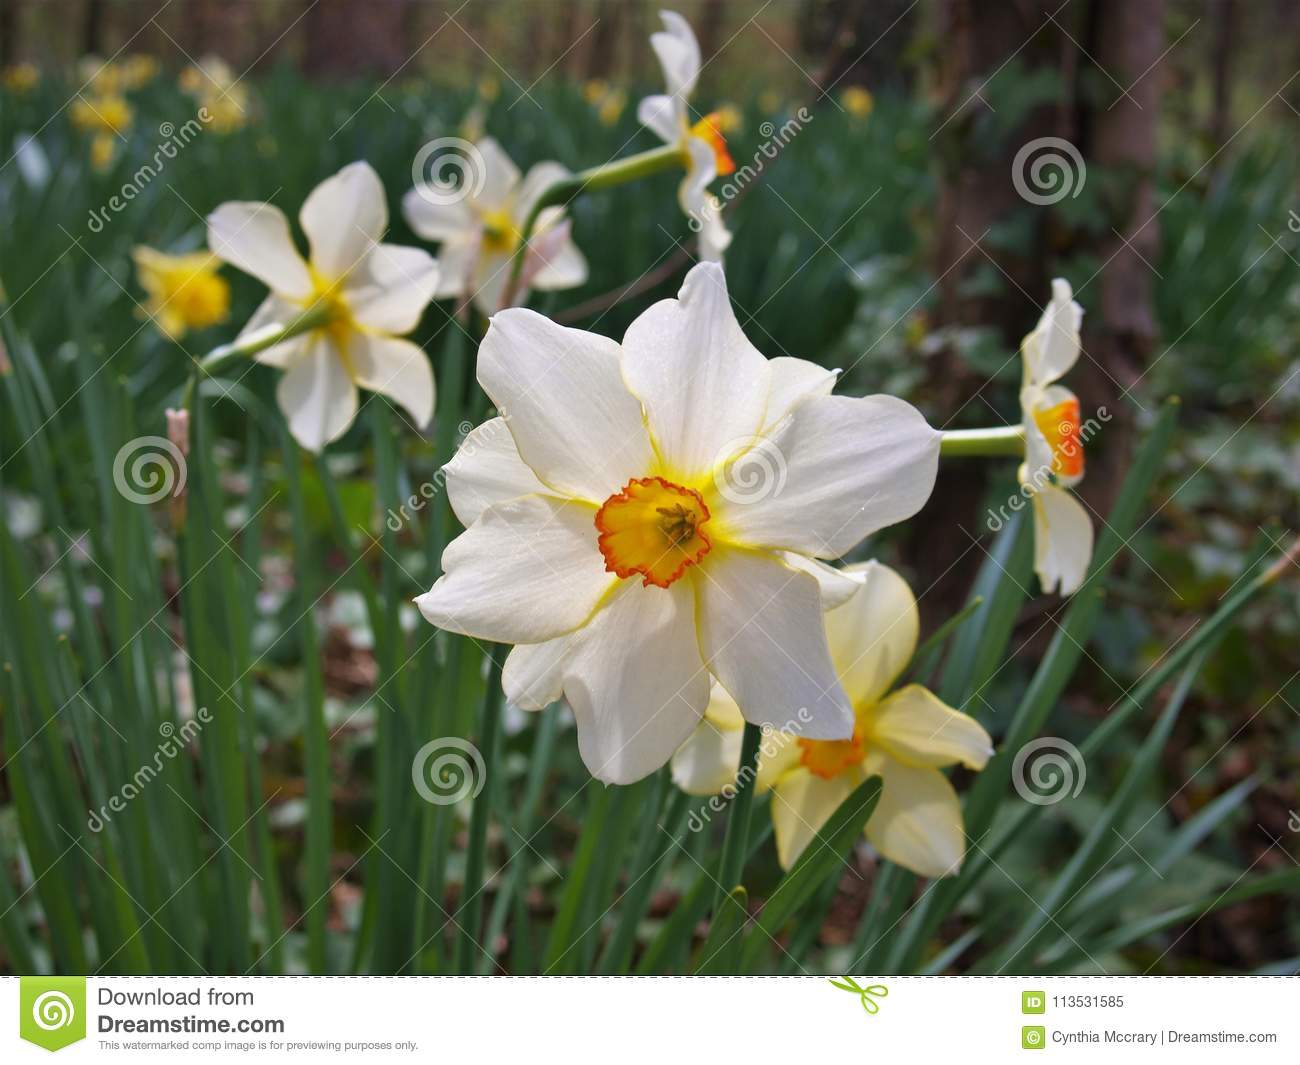 Narcissus Flowers More Commonly Called Daffodil Stock Image Image